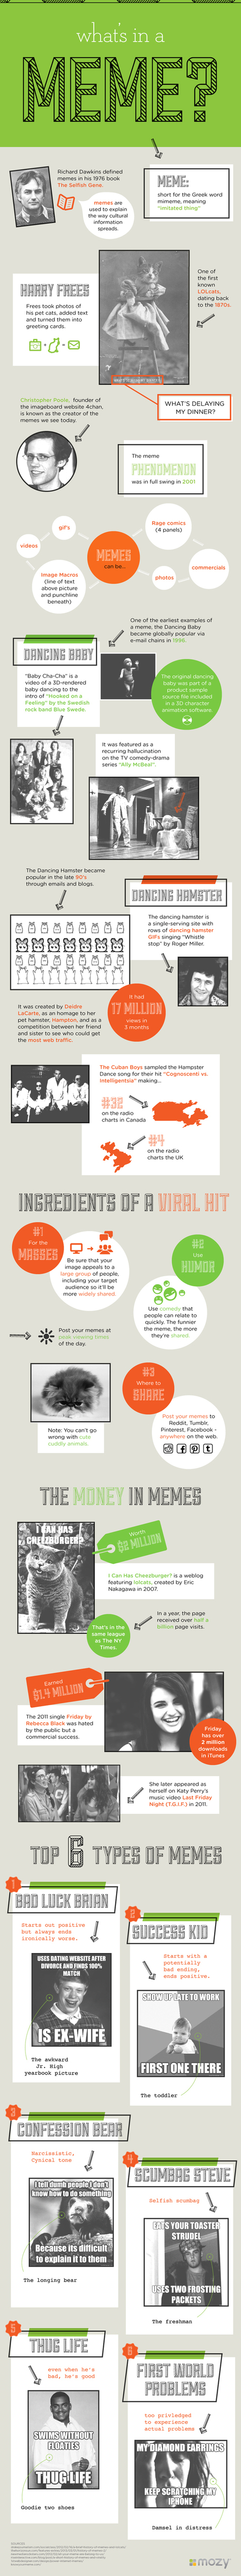 What's in a Meme? - an Infographic | Social Media Butterflies | Scoop.it